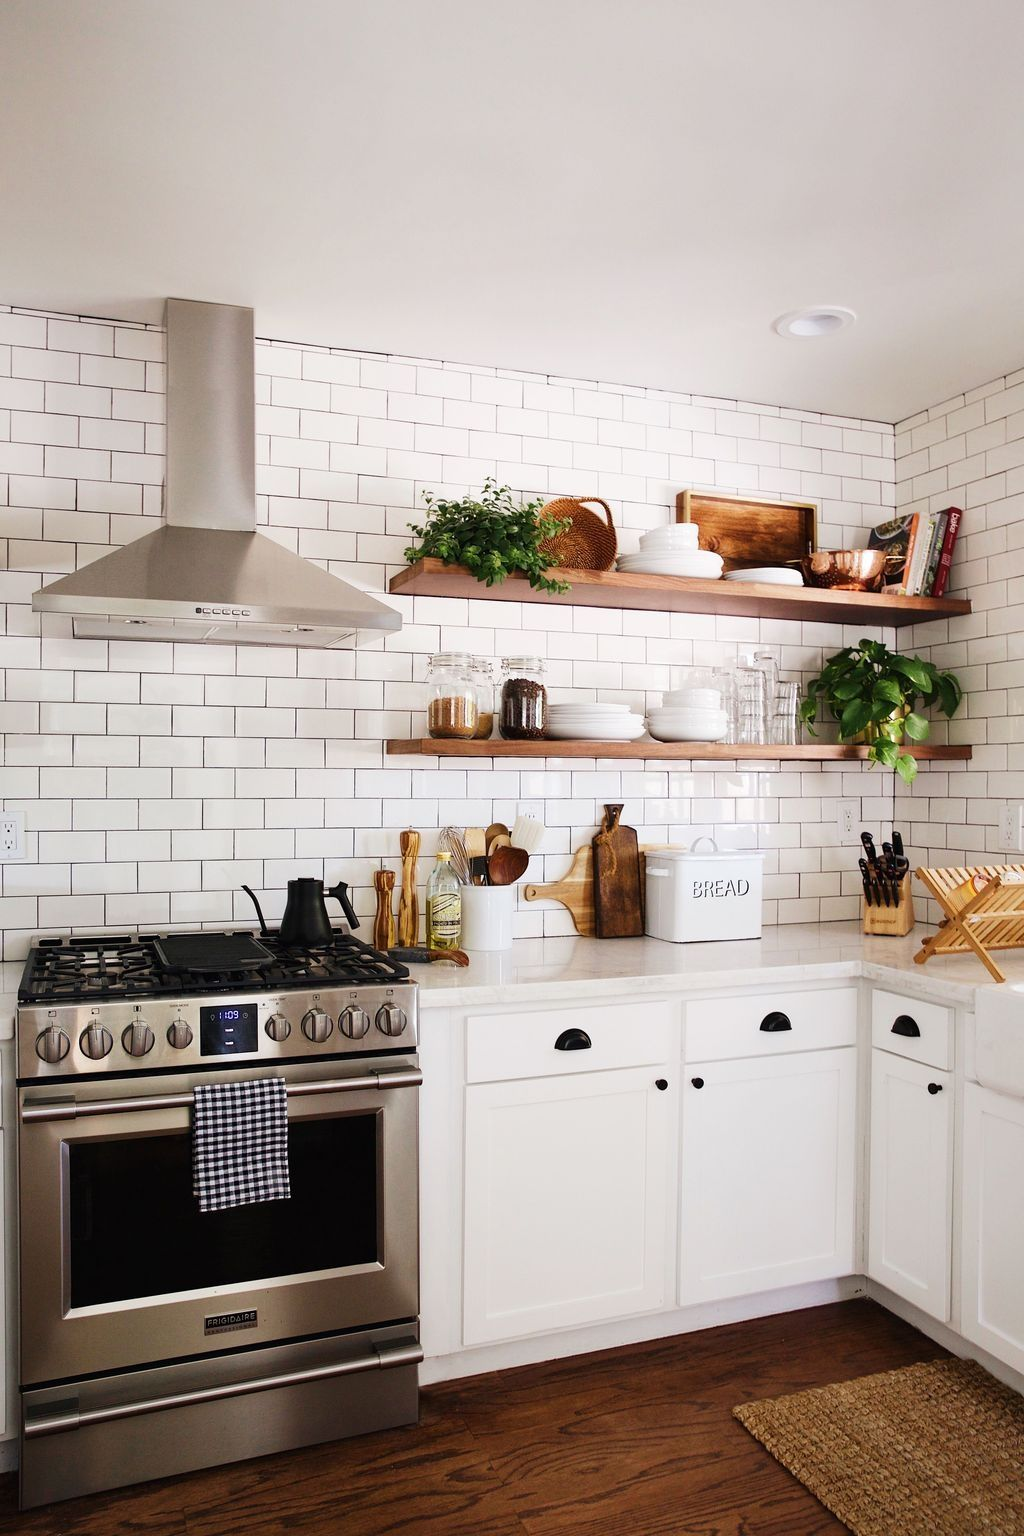 Brilliant Small Kitchen Remodel Ideas 22   Kitchens  Cottage     Brilliant Small Kitchen Remodel Ideas 22